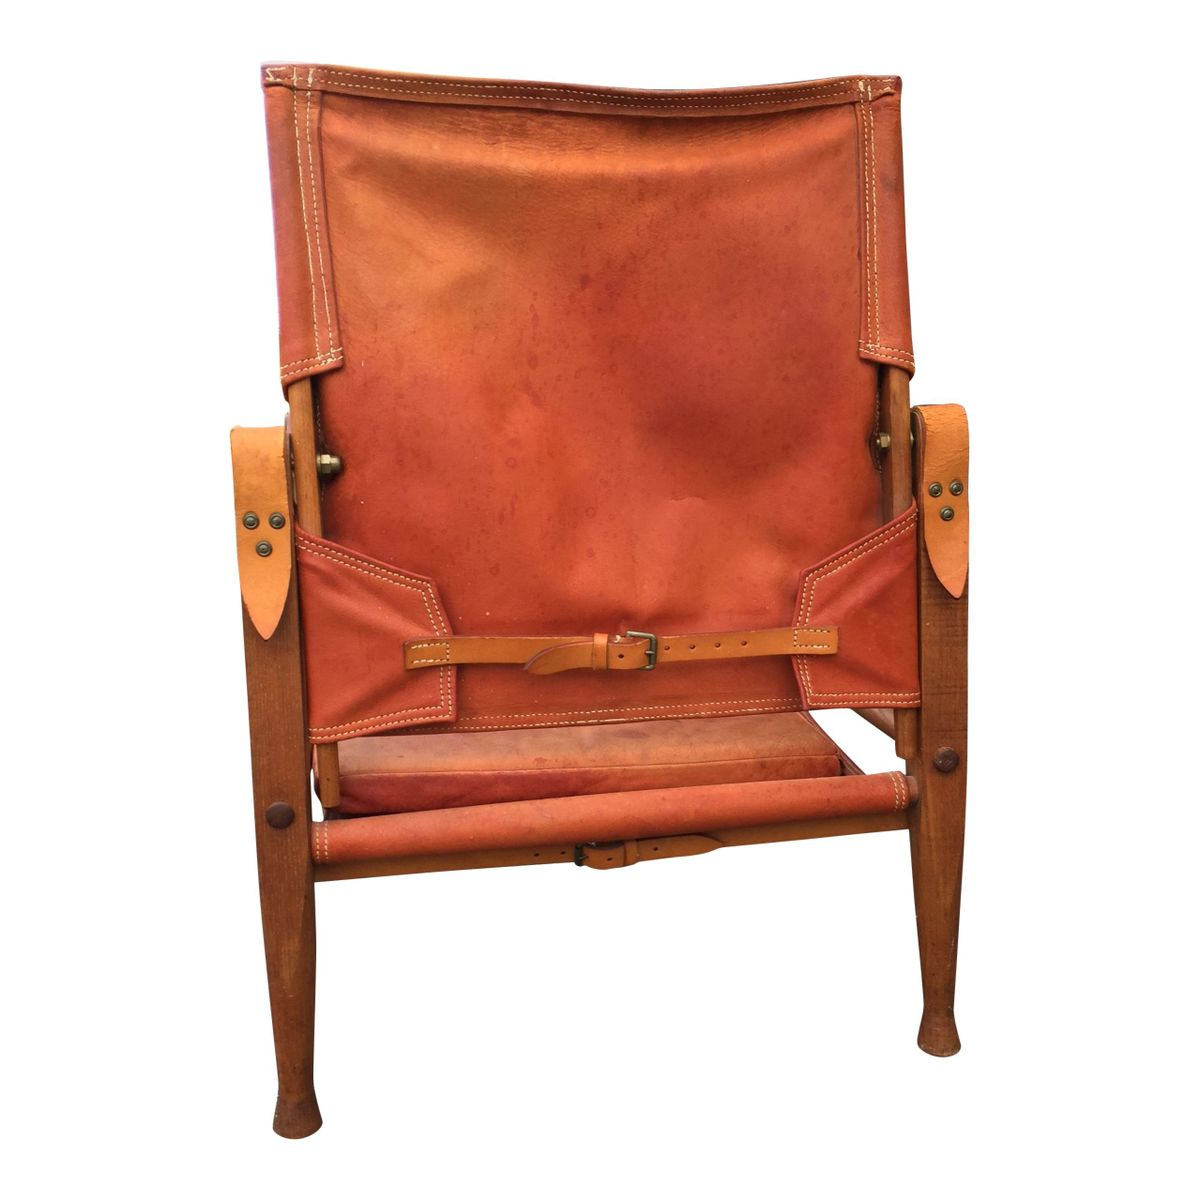 leather safari chair molded plastic chairs by kaare klint for rud rasmussen